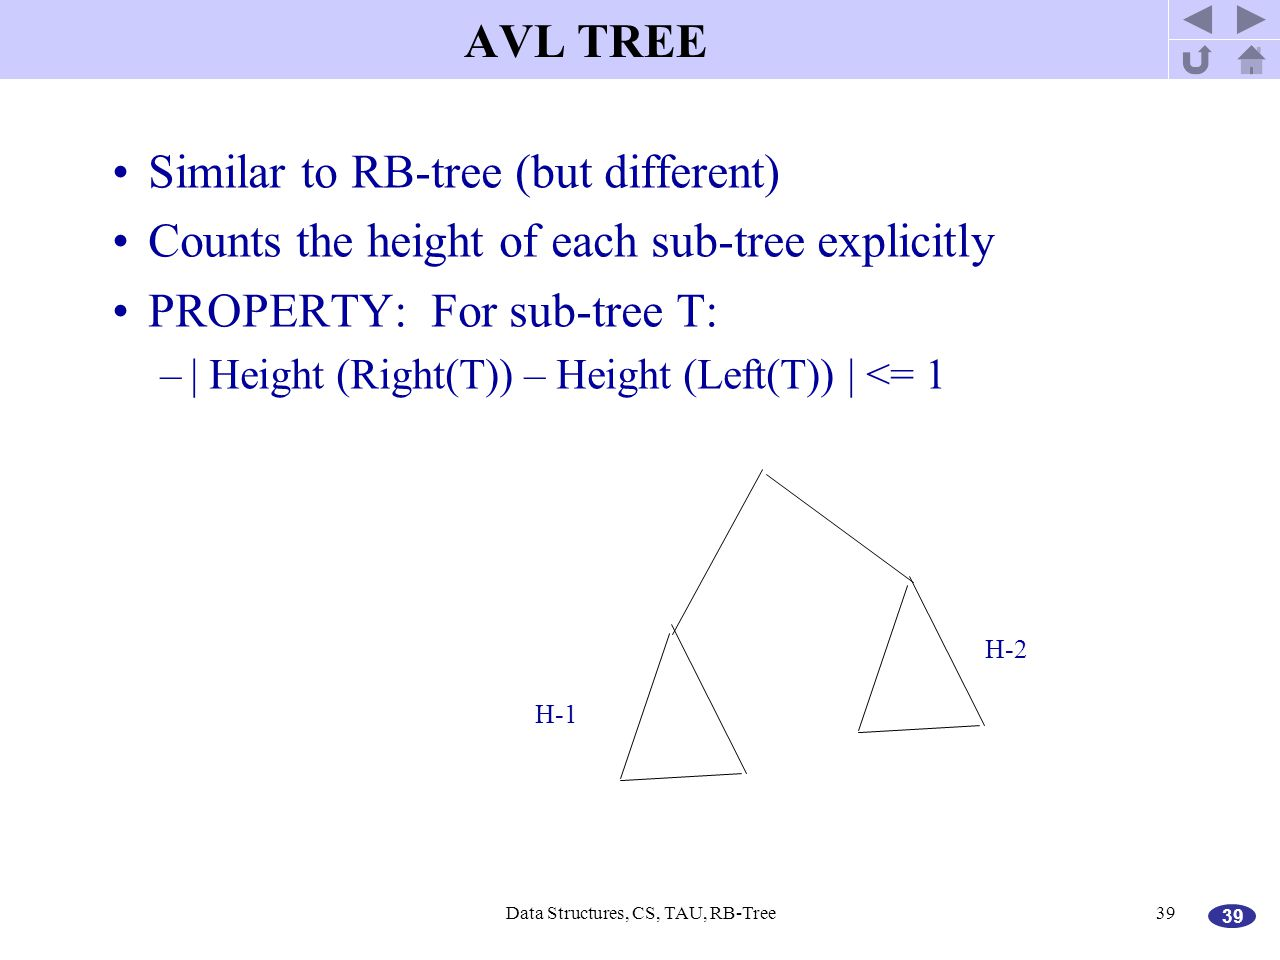 39 Data Structures, CS, TAU, RB-Tree39 AVL TREE Similar to RB-tree (but different) Counts the height of each sub-tree explicitly PROPERTY: For sub-tre